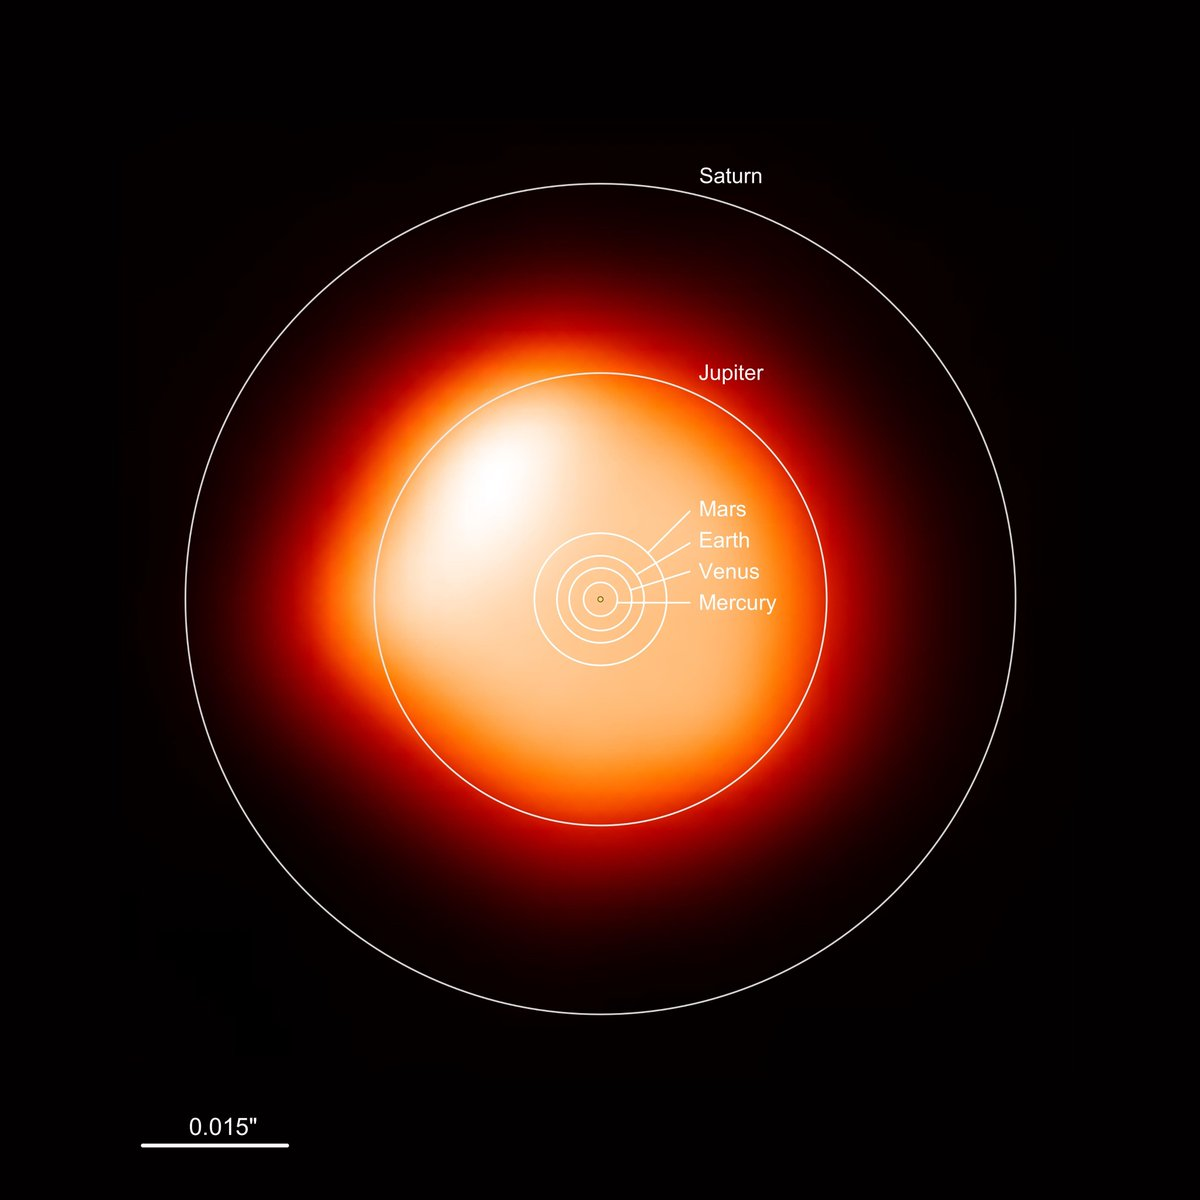 test Twitter Media - In 2017 Dr Eamon O'Gorman (then astronomer at the Dublin Institute for Advanced Studies) led an international team to create the image of Betelgeuse.  Now one of the brightest stars in the sky has been dimming: https://t.co/5SKjDvPPqS  #DIASdiscovers #ALMA #telescope https://t.co/21HsePB8ut